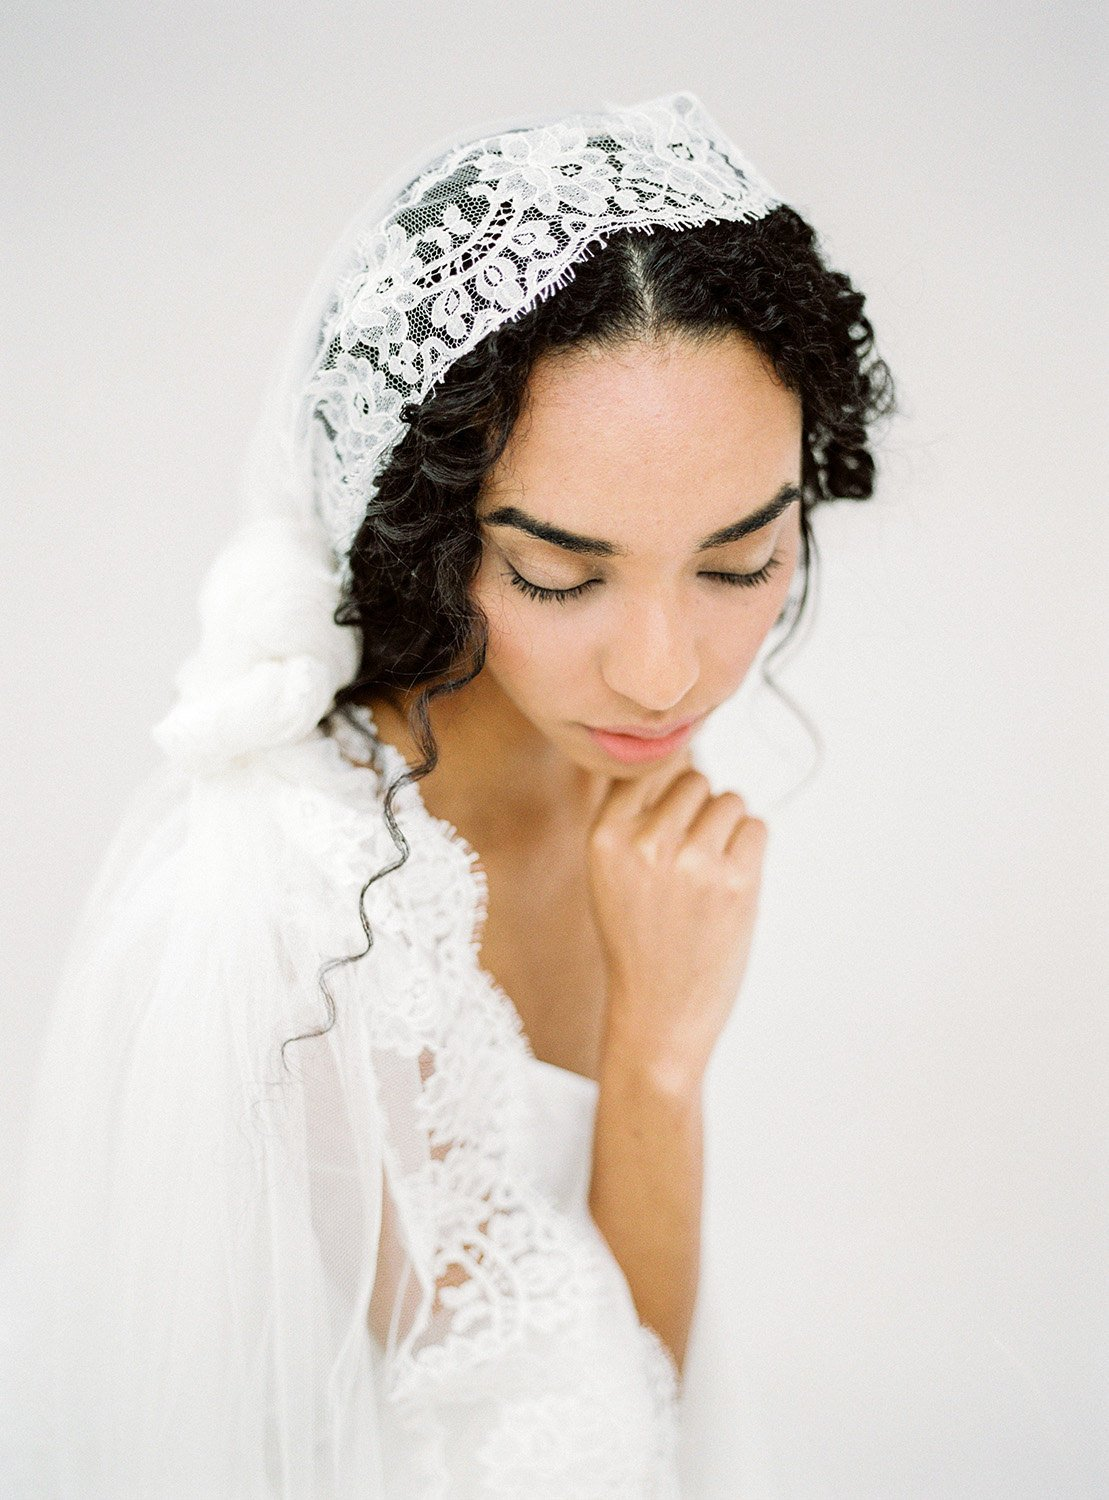 Ivory Mantilla Veil, Lace Cathedral Wedding Bridal Veil, Knotted Wedding Bridal Veil, Long Ivory Veil, Bohemian Statement Veil.jpg